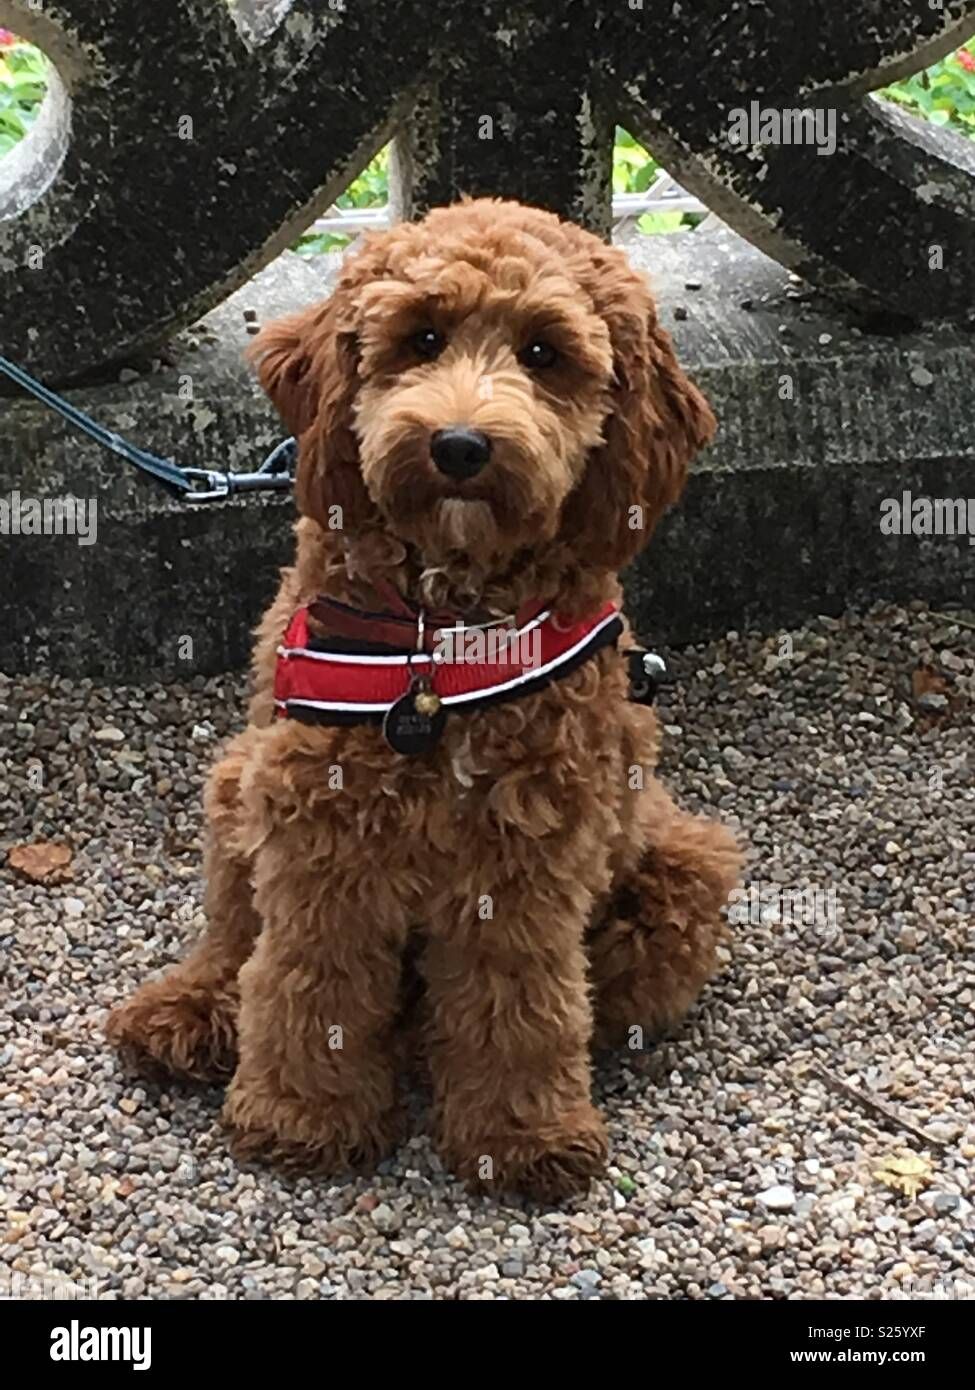 Red Cockerpoo puppy - Stock Image